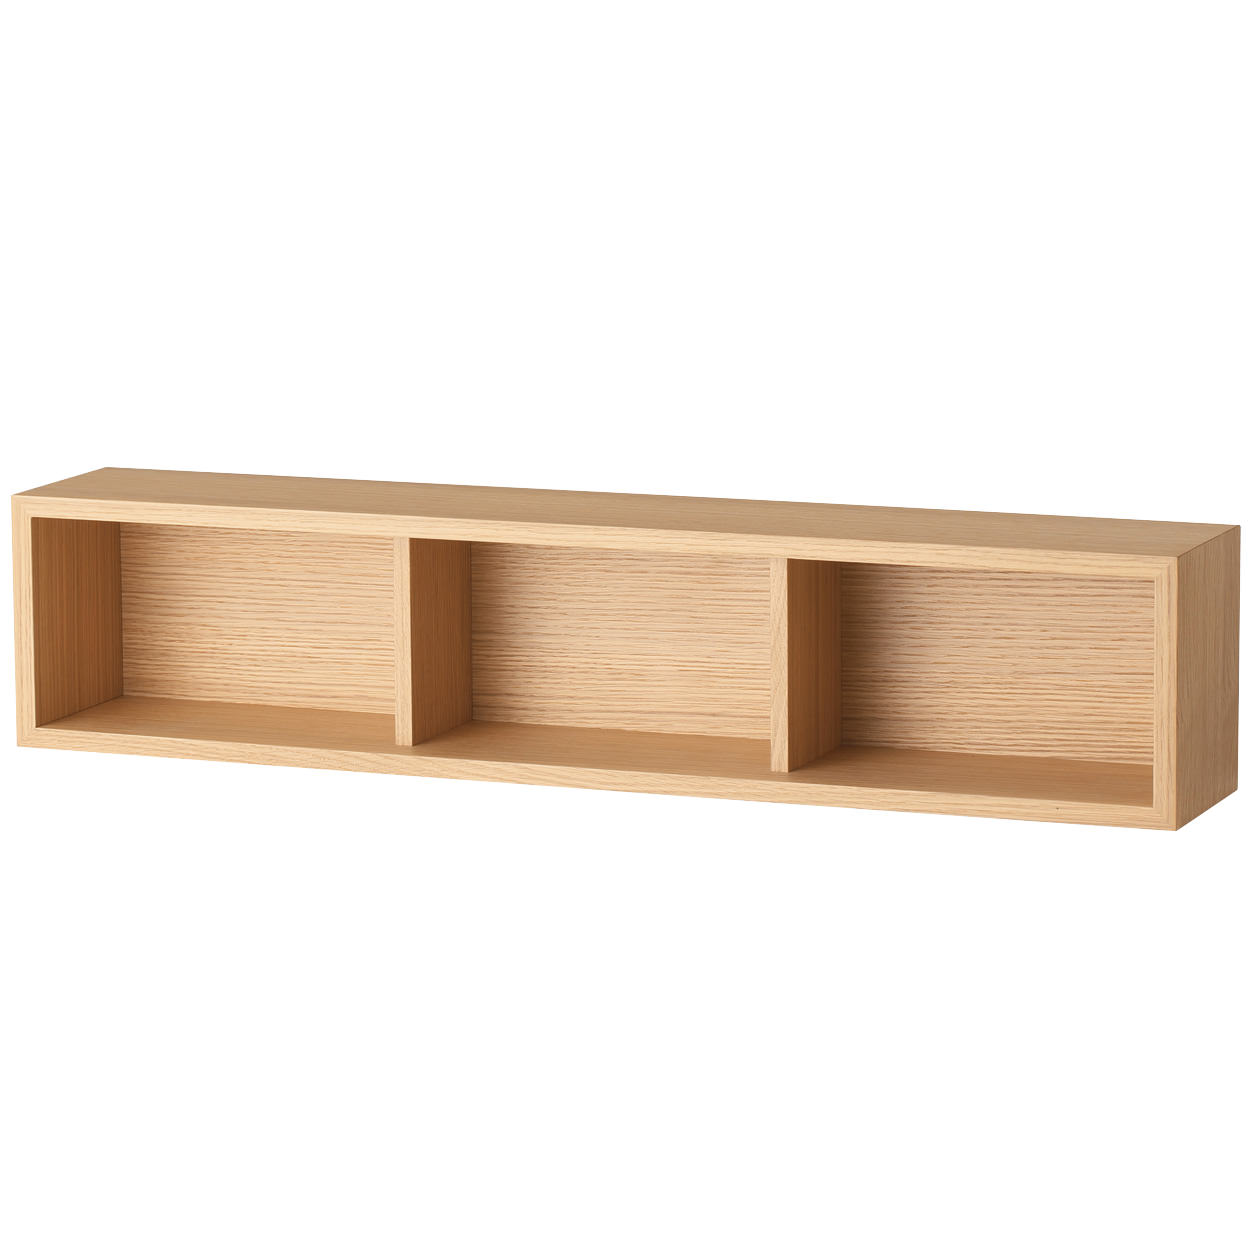 WALL FURNITURE / BOX / 88CM / OAK